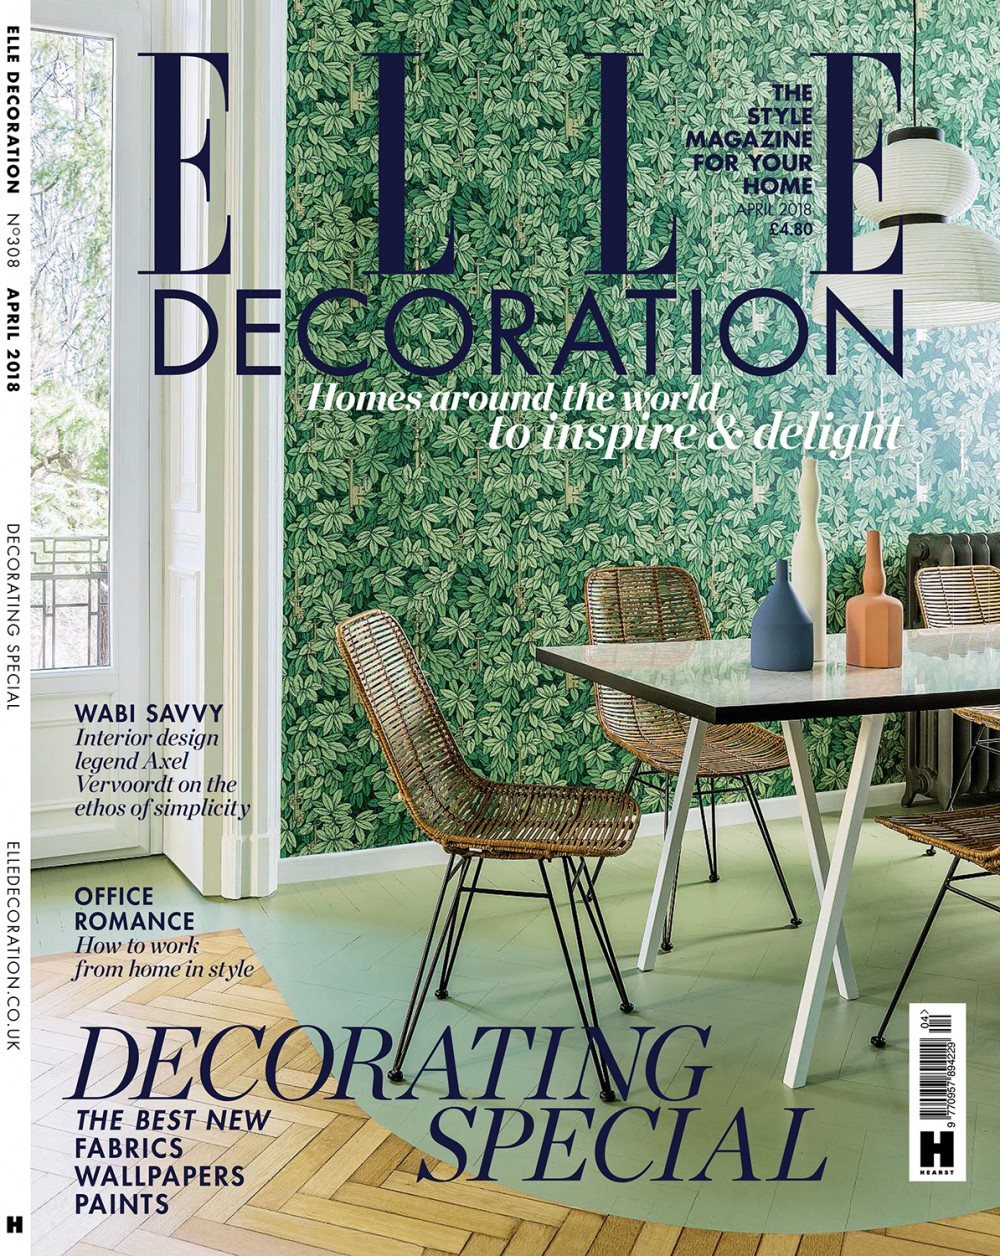 ED UK April Cover